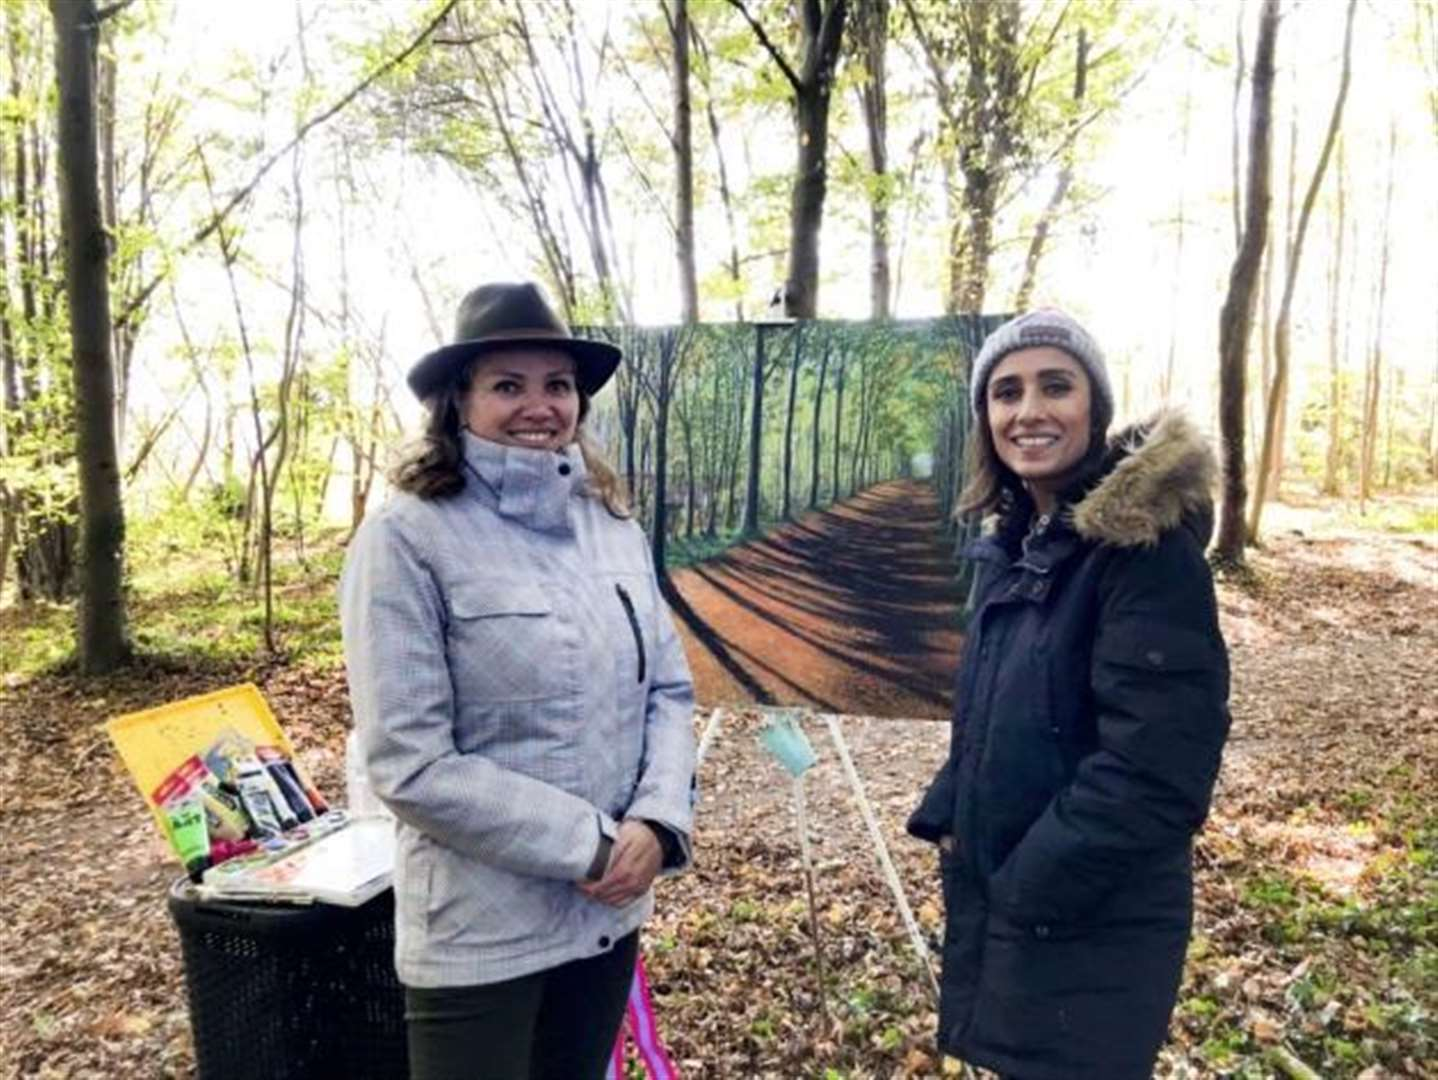 Cambridge artist to appear on BBC's Countryfile